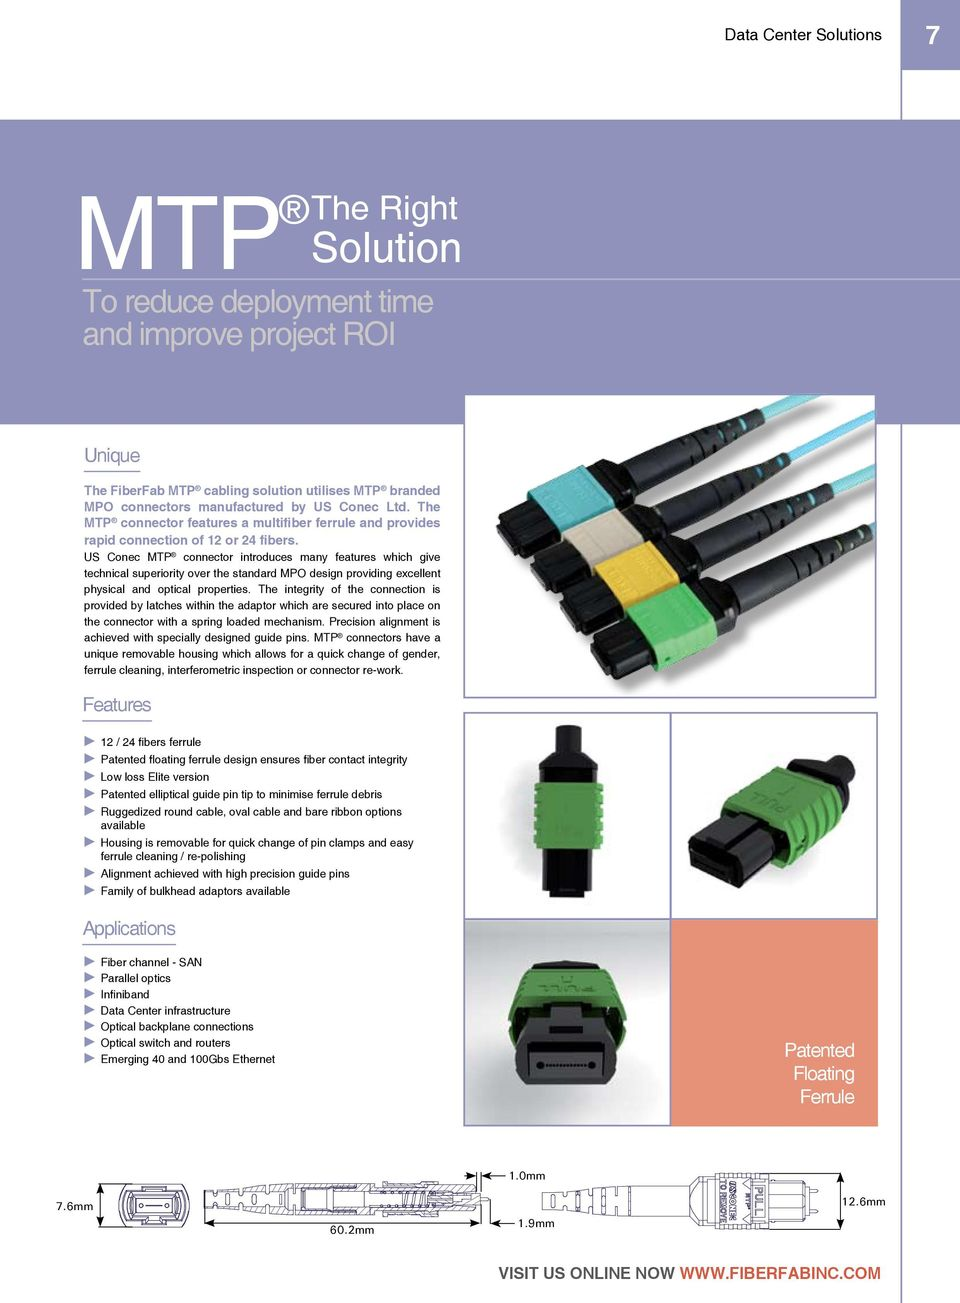 Data Center Solutions Catalogue Pdf Mtpmpocrossovercablediagram1jpg Us Conec Mtp Connector Introduces Many Features Which Give Technical Superiority Over The Standard Mpo Design